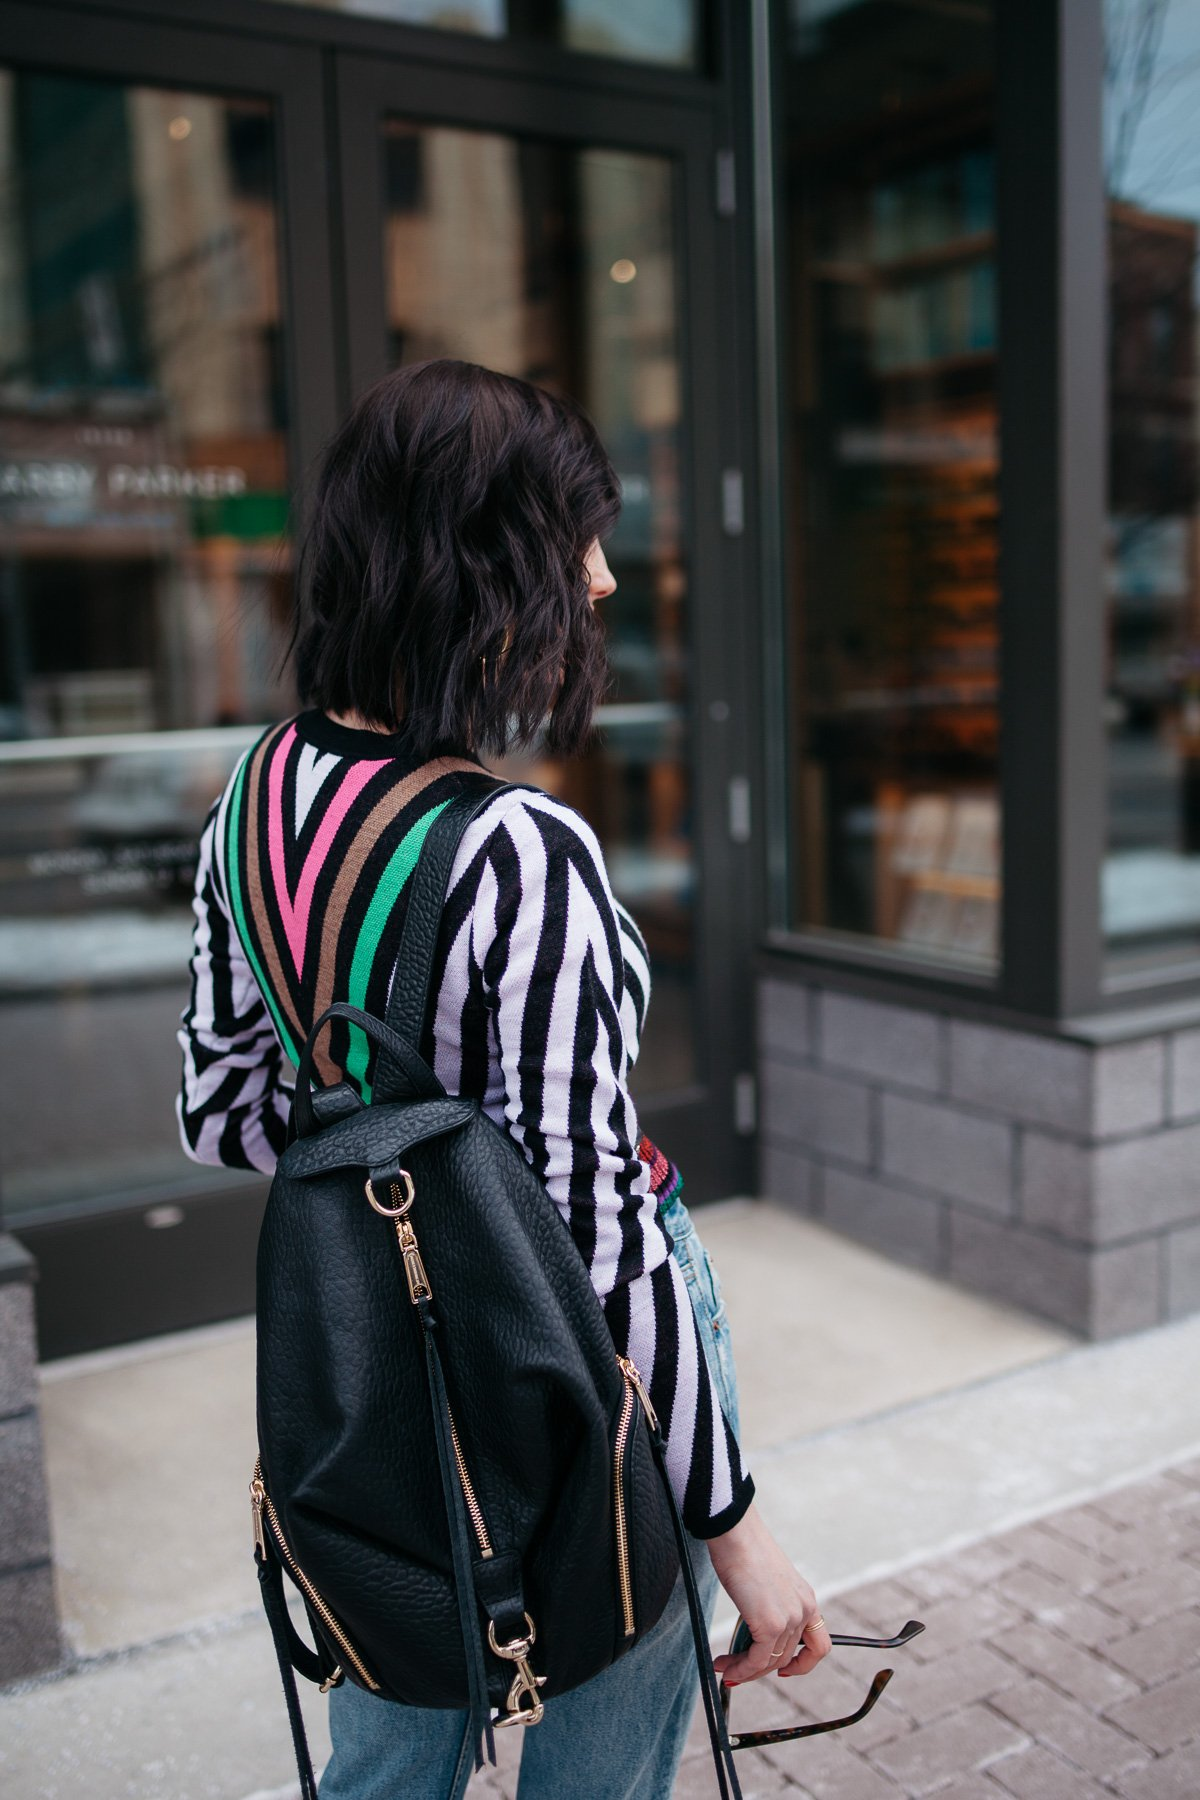 Top US fashion blogger, Wellesley & King, styles a DVF sweater three ways: girl in dvf sweater, distressed jeans, jcrew rebecca minkoff black leather backpack outfit